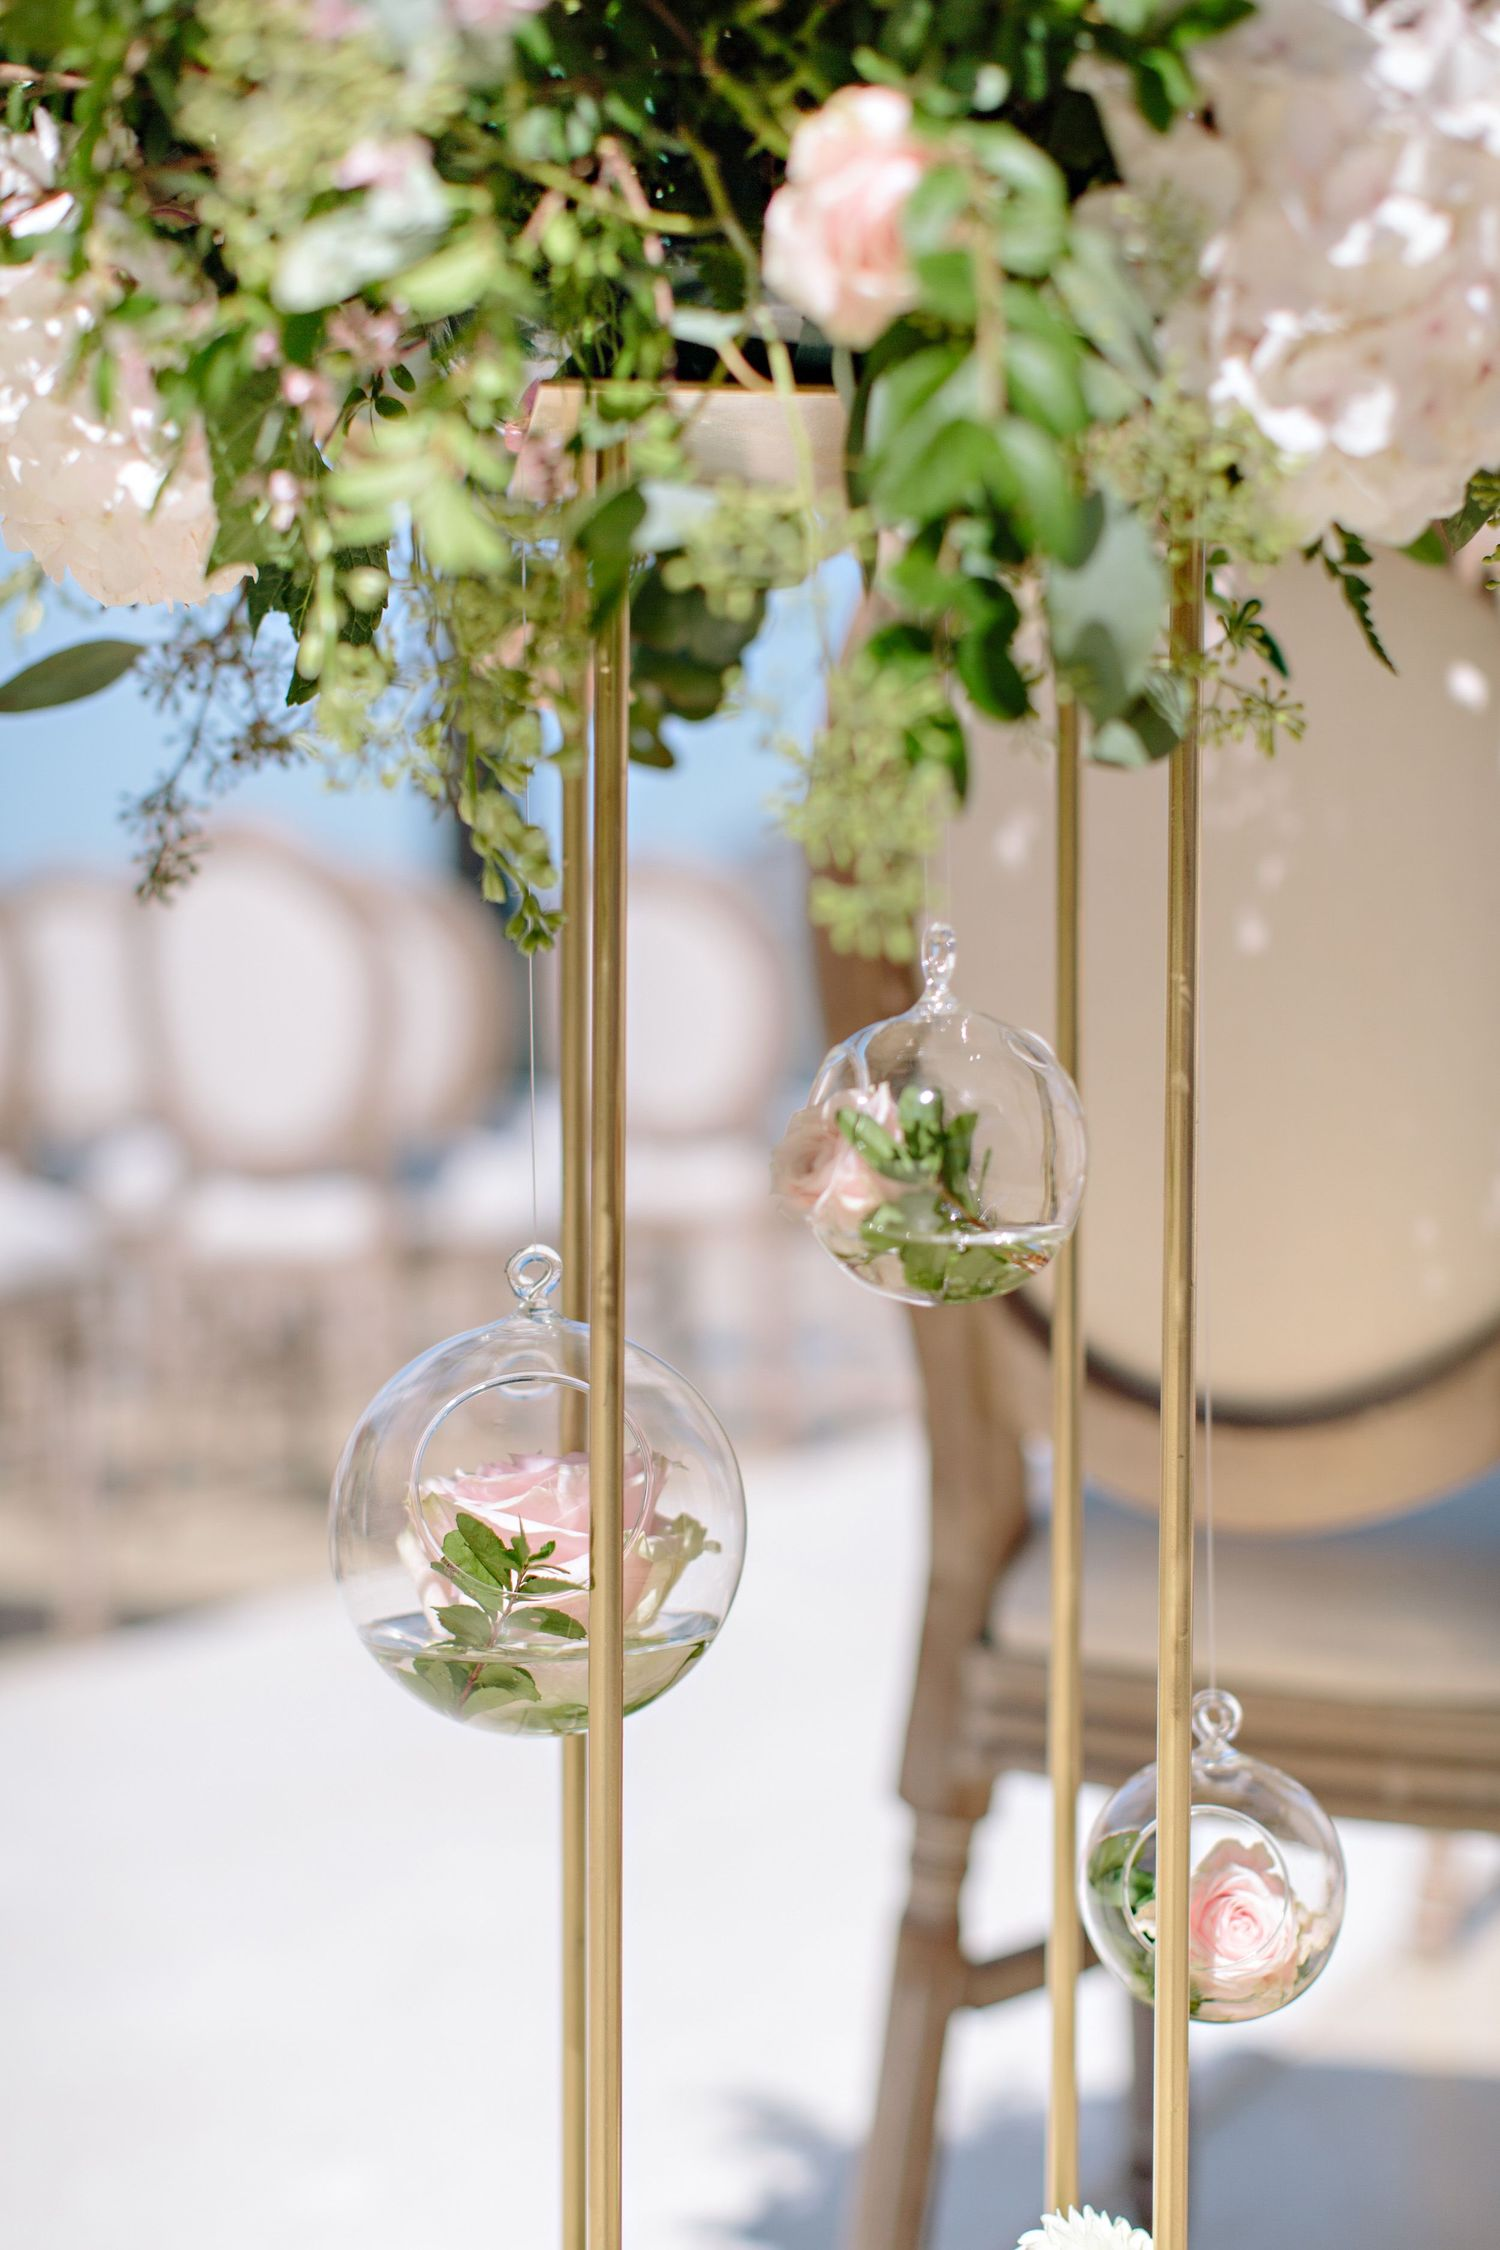 hanging glass ball plant vase